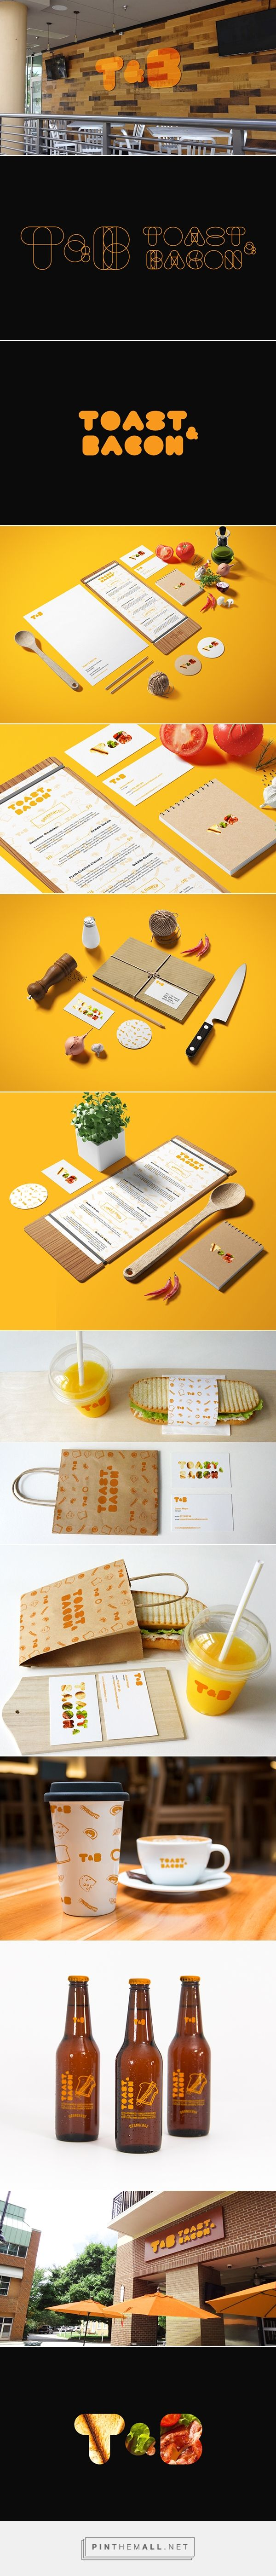 Toast & Bacon Restaurant on Behance by Sebastian Bednarek curated by Packaging Diva PD. More fun lunchtime identity packaging.